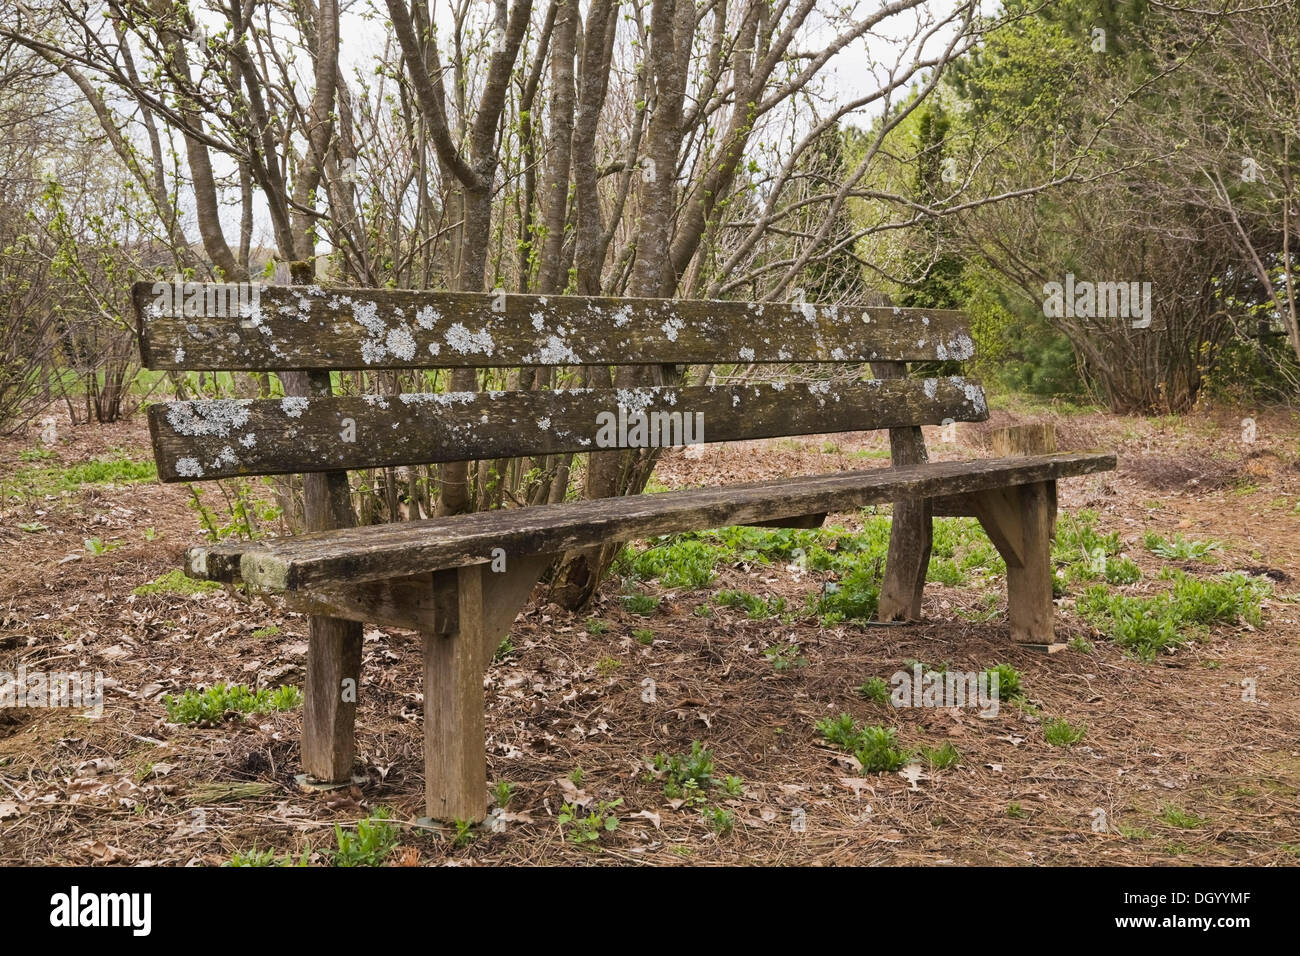 An old wooden bench in the 'Jardin du Grand Portage' garden in spring, Saint-Didace, Lanaudiere, Quebec, Canada - This image is - Stock Image